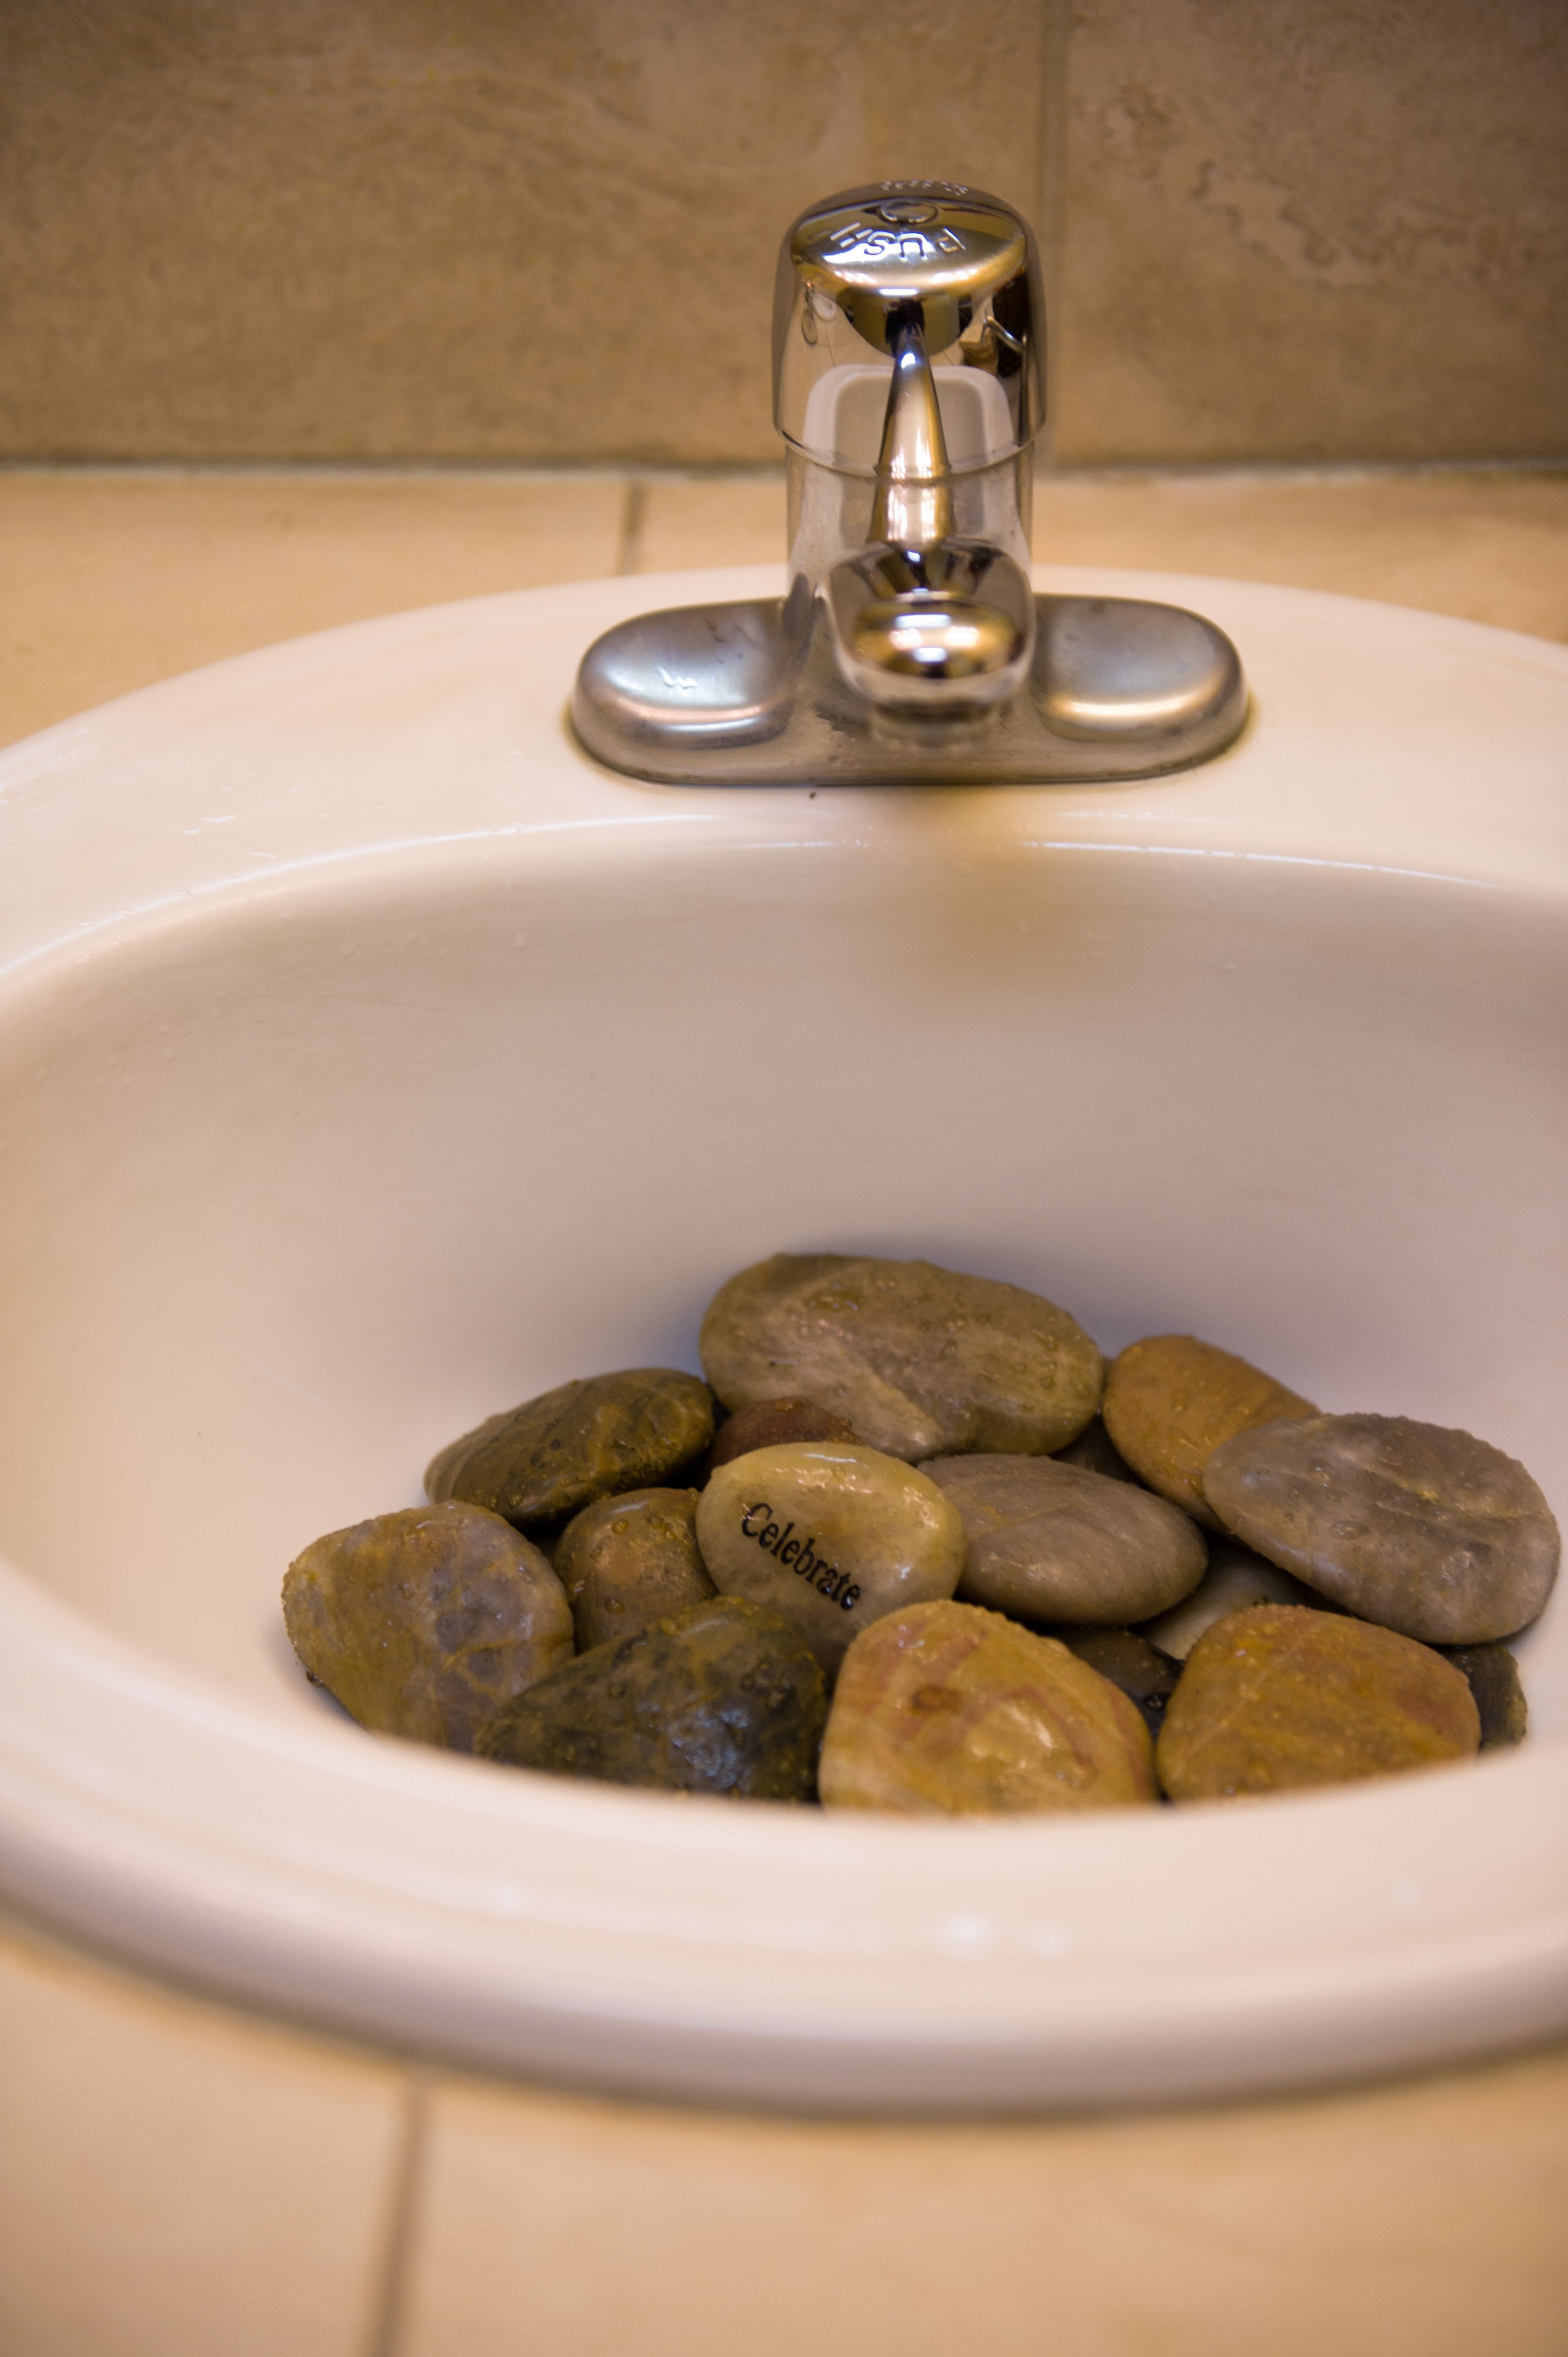 River Rock In Guest Bathroom To Minimize Splash Cute Addition